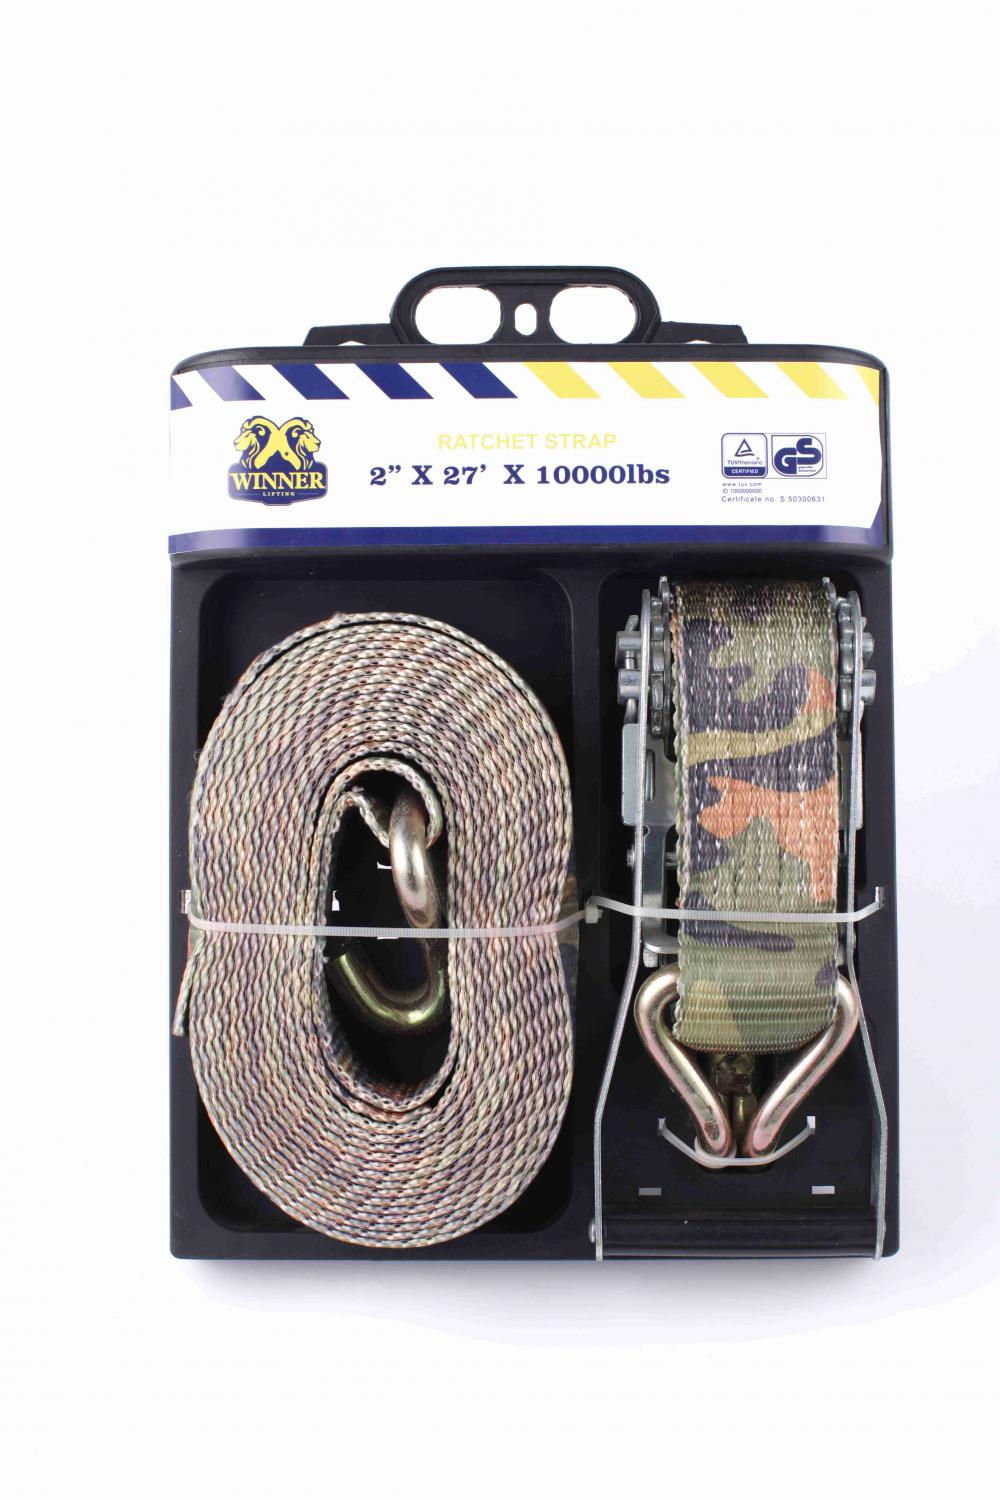 2'X27'' 1000lbs ratchet lashing strap kit